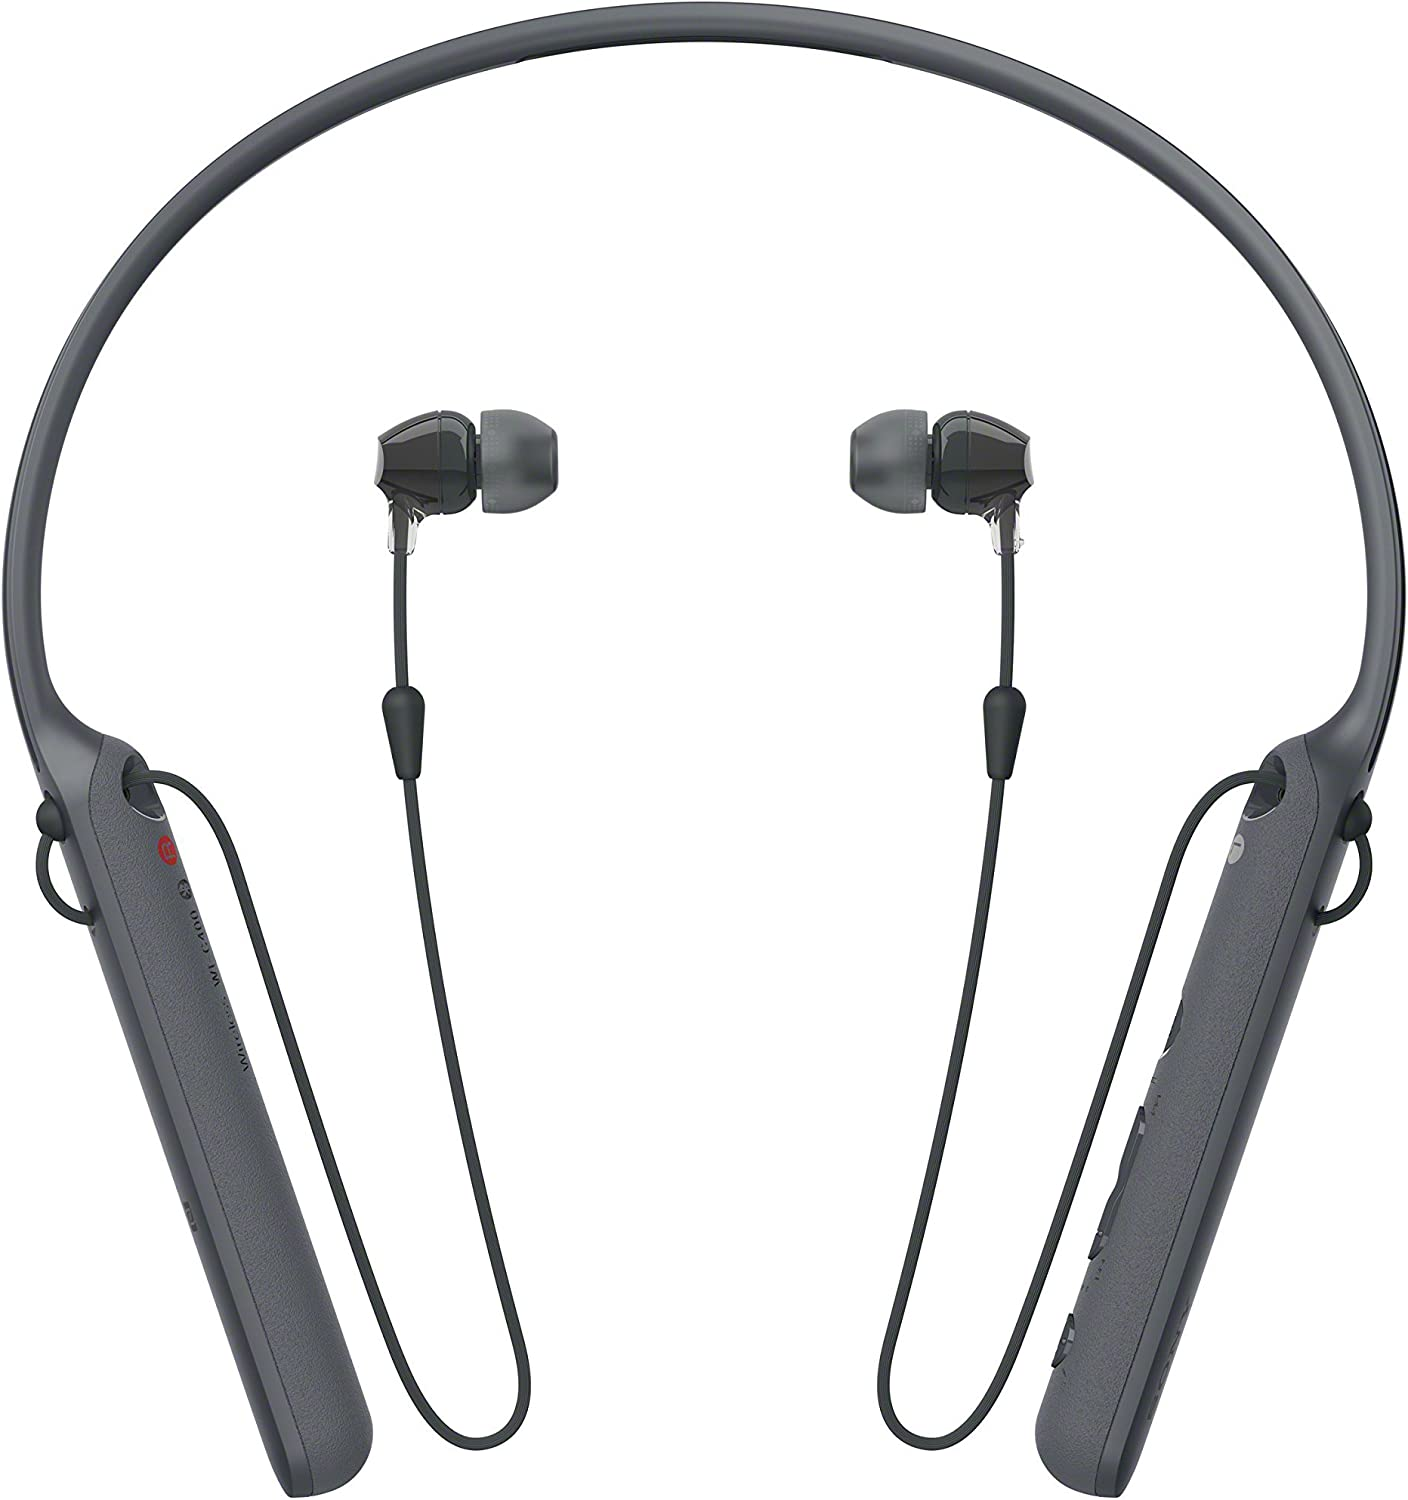 Sony Wireless Behind-Neck Headset w/Earbuds - Black - WI-C400 (Renewed)